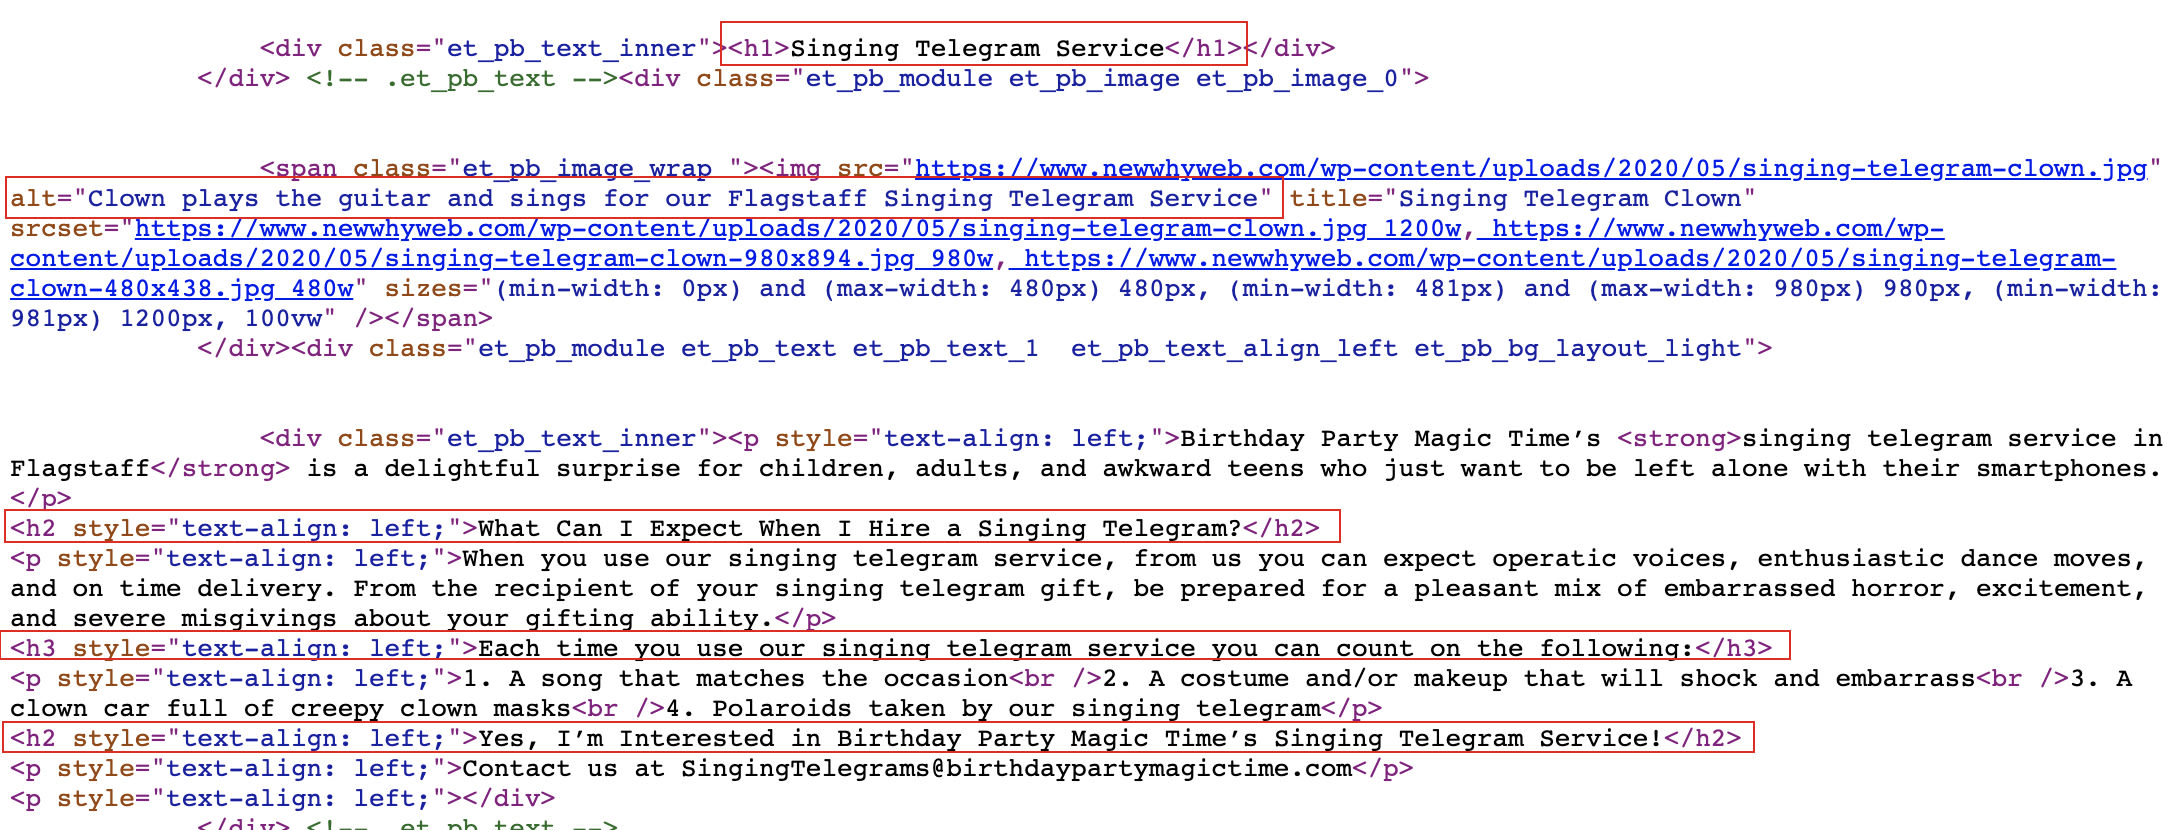 screenshot of HTML code for SEO to see where H1, H2, H3 tags and alt text are